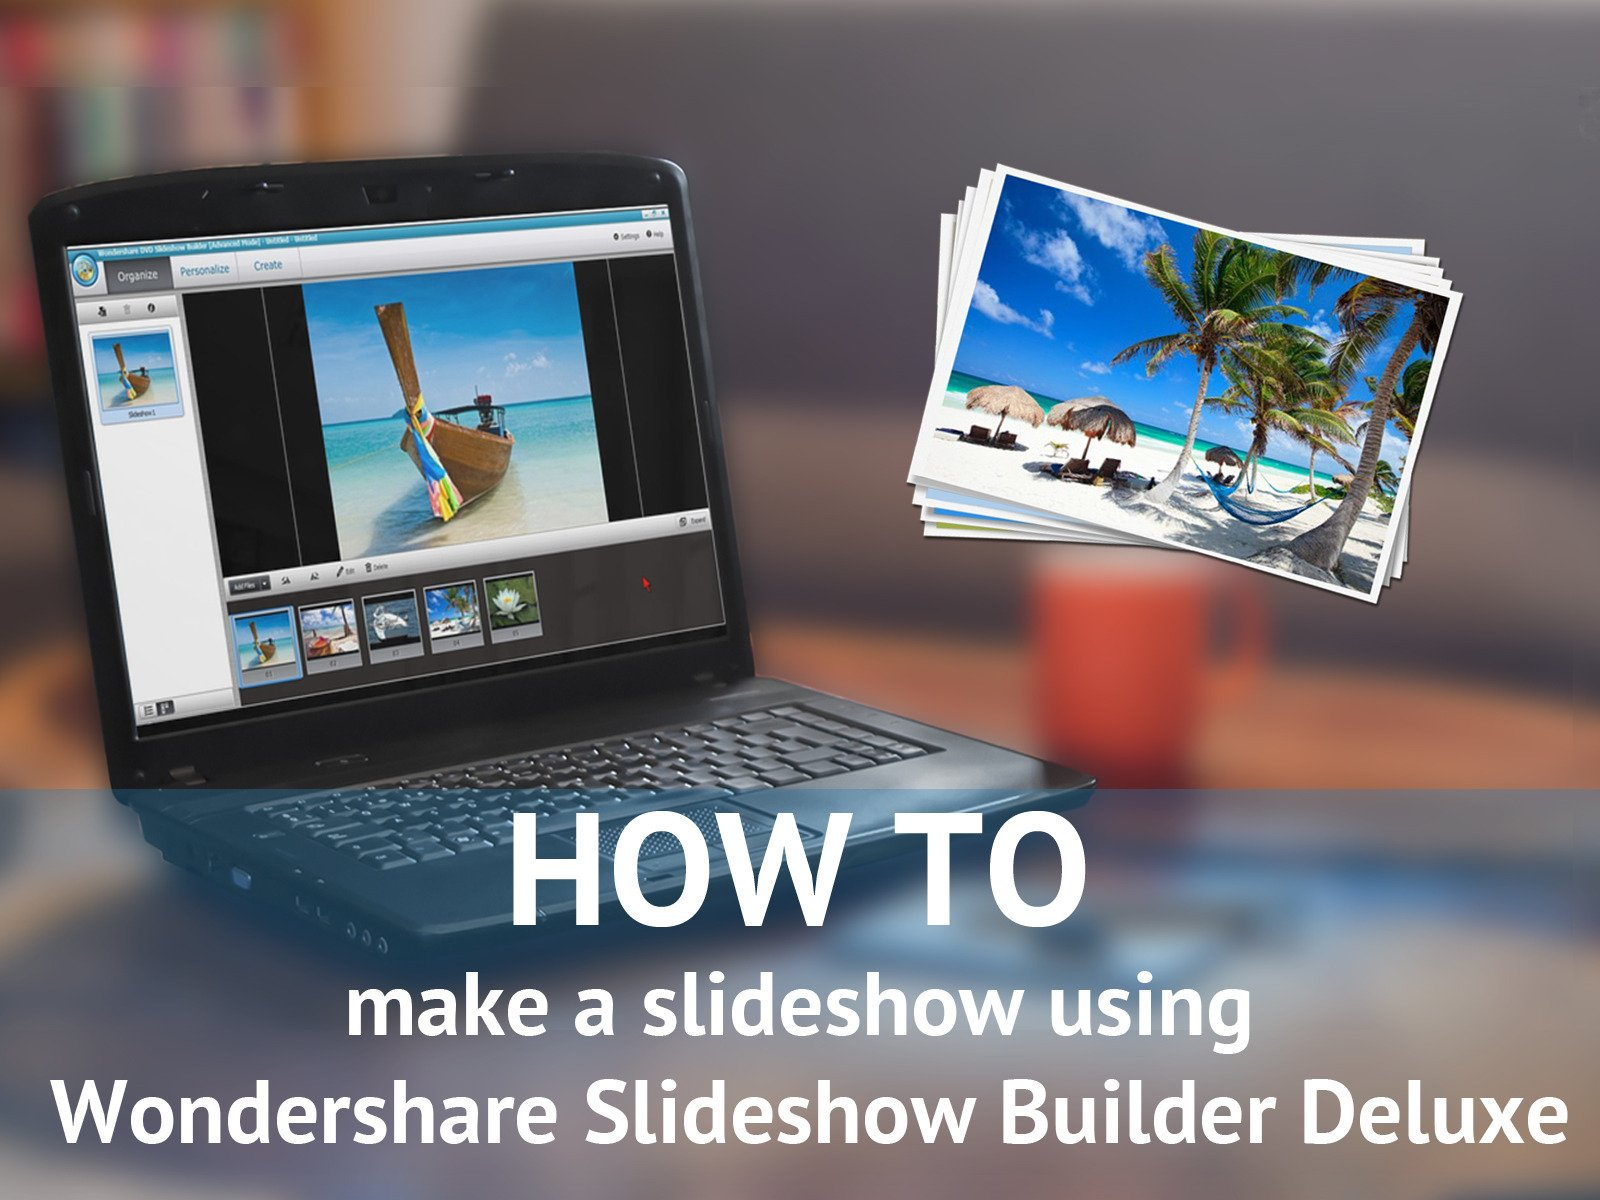 Make a slideshow in six easy steps - Season 1